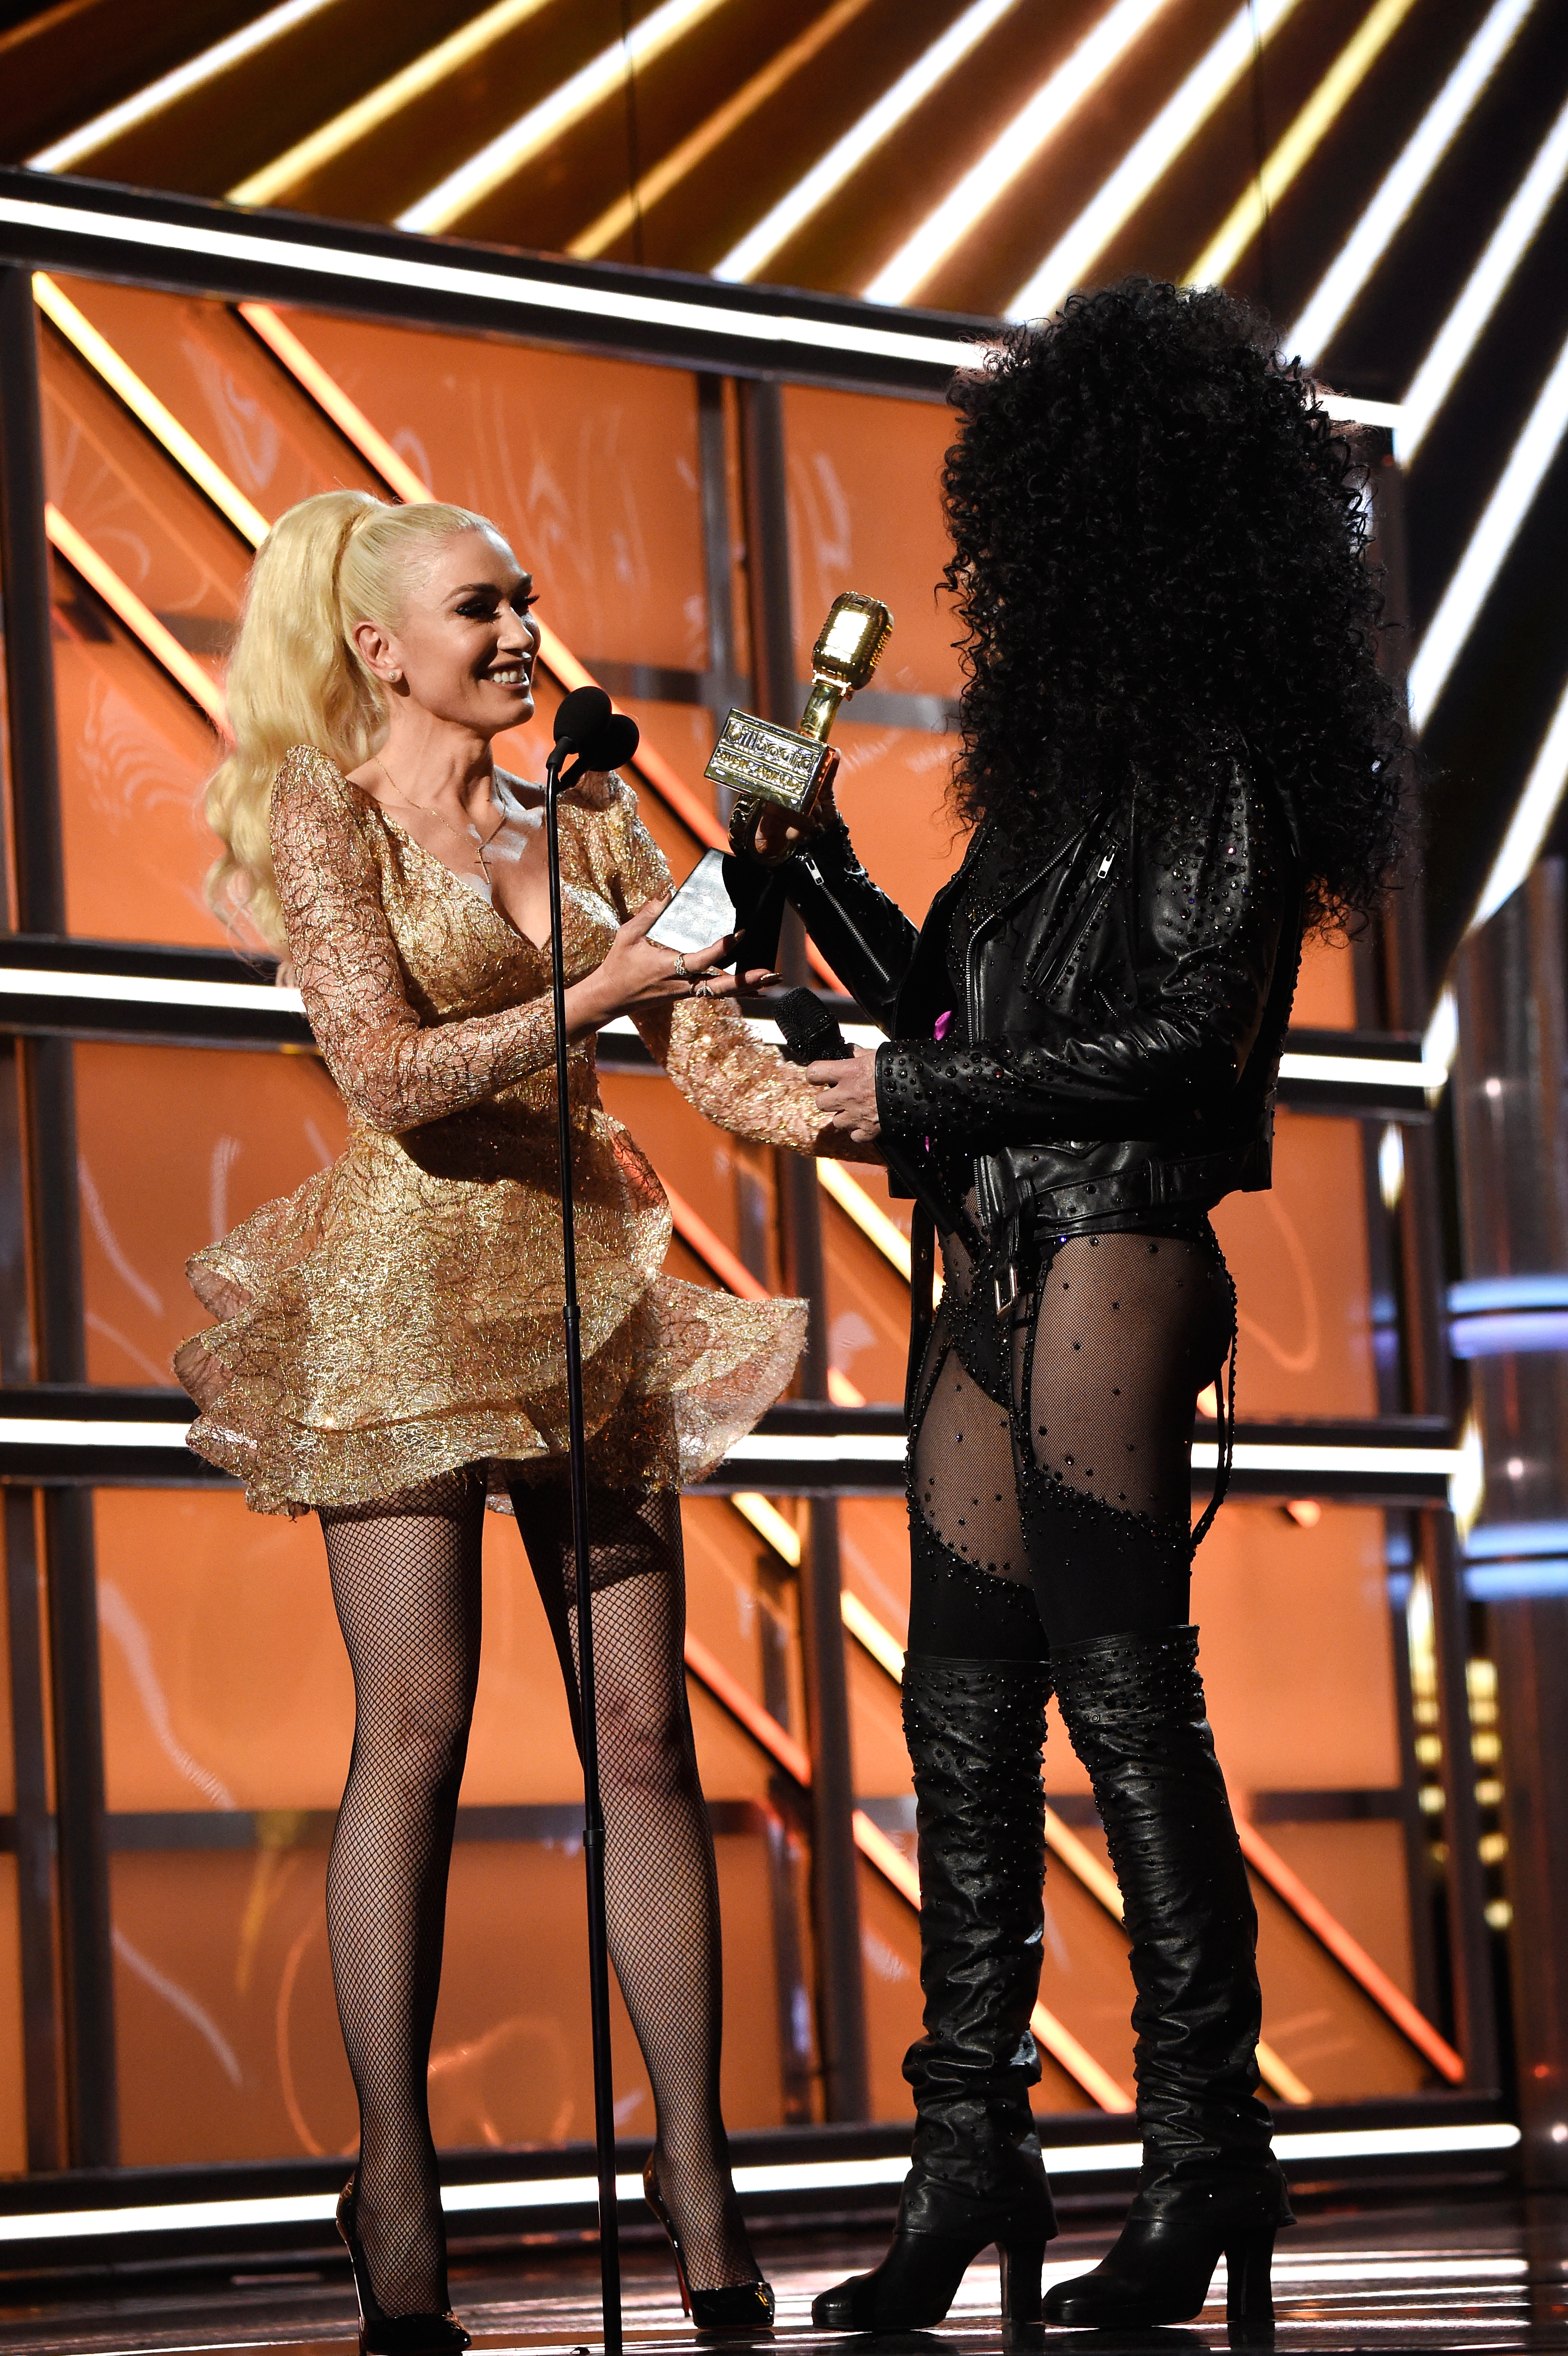 LAS VEGAS, NV - MAY 21: Recording artist Gwen Stefani (L) presents the Icon Award to honoree Cher onstage during the 2017 Billboard Music Awards at T-Mobile Arena on May 21, 2017 in Las Vegas, Nevada. (Photo by Kevin Mazur/BBMA2017/Getty Images for dcp)